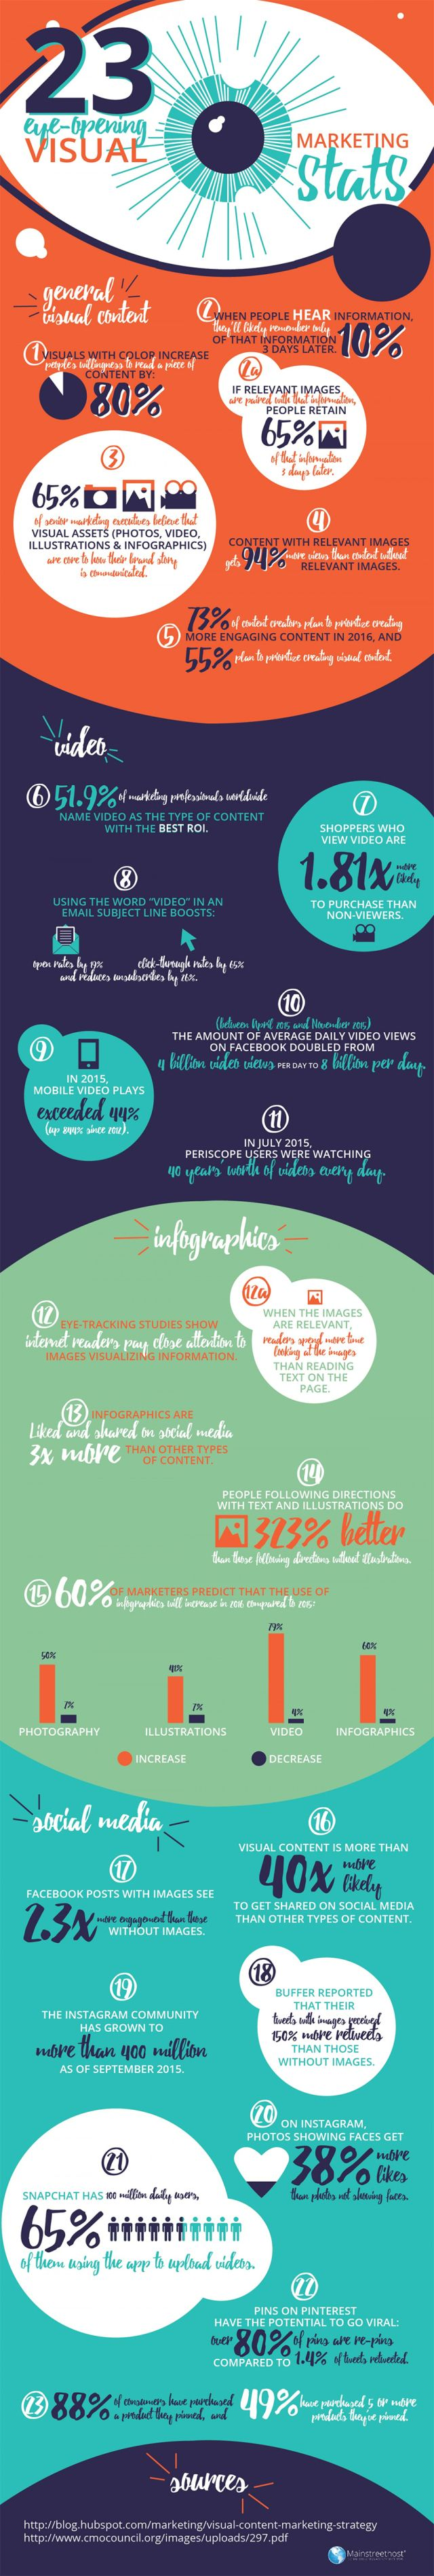 Visual Marketing 23 Stats That Will Make You Change Your Strategy - @redwebdesign